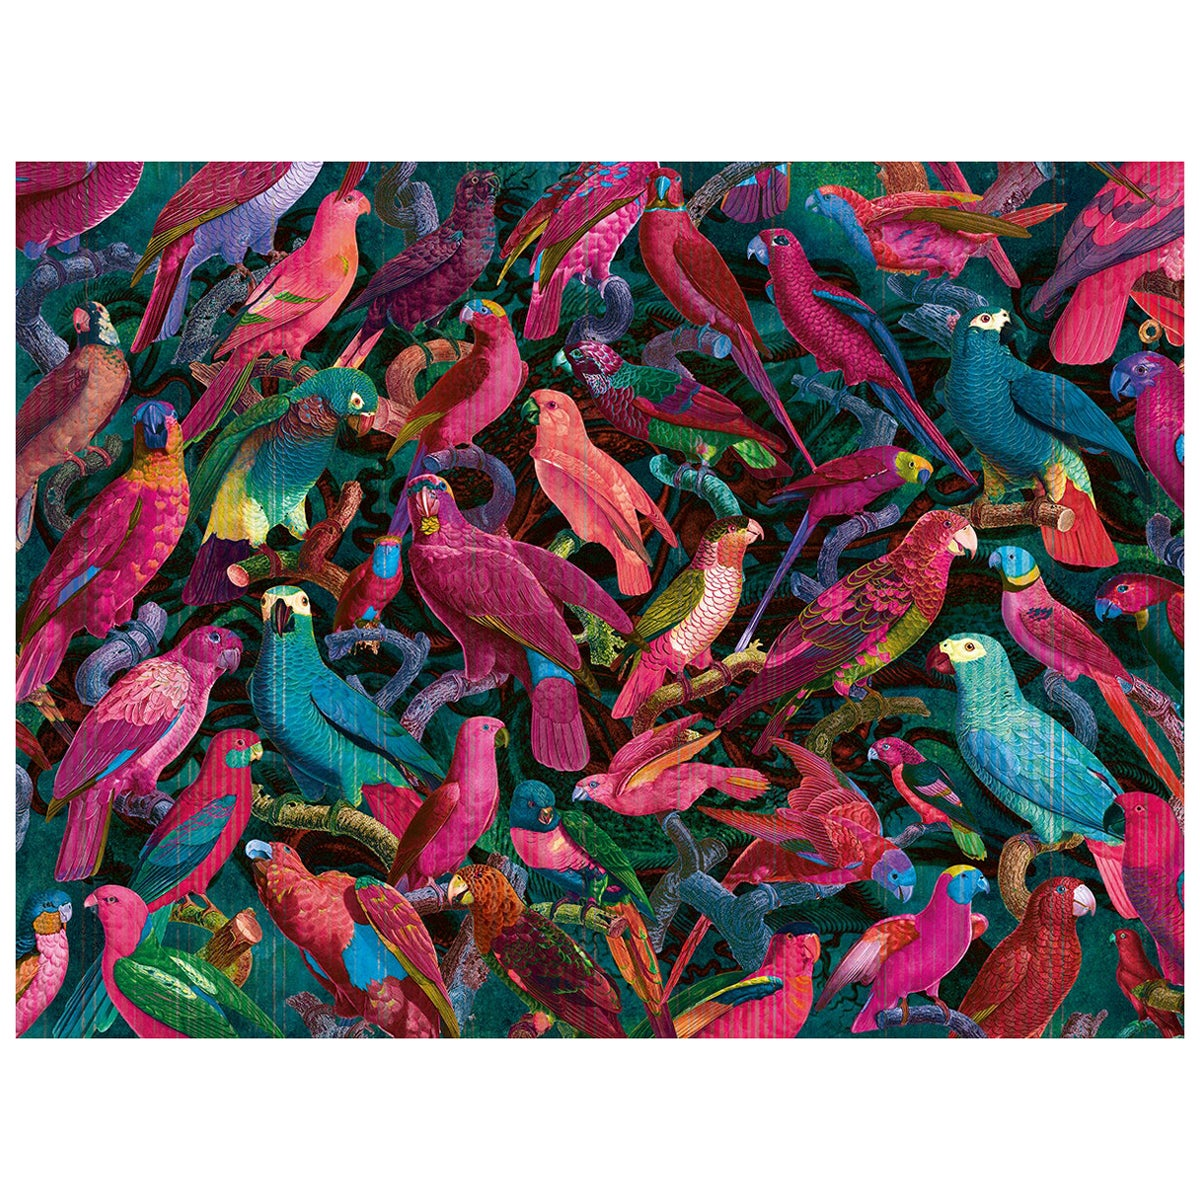 Parrot Imperialis - custom mural wallpaper (fuchsia and blue)